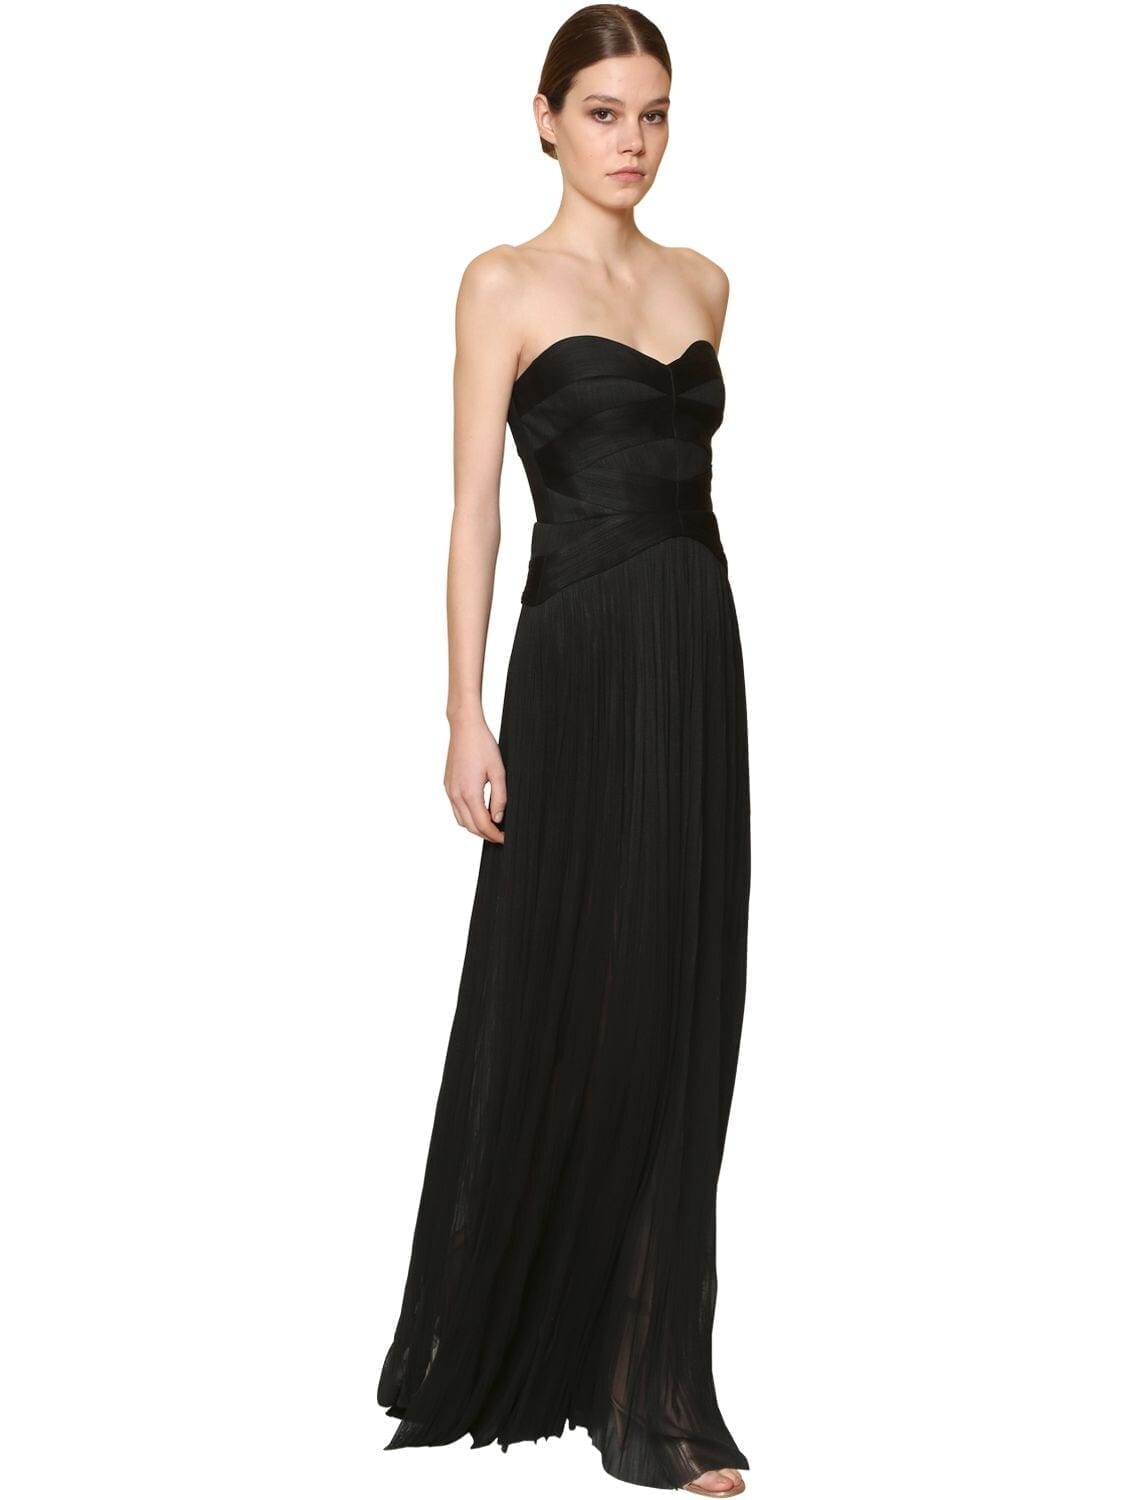 MARIA LUCIA HOHAN Long Strapless Metallic Silk Tulle Dress